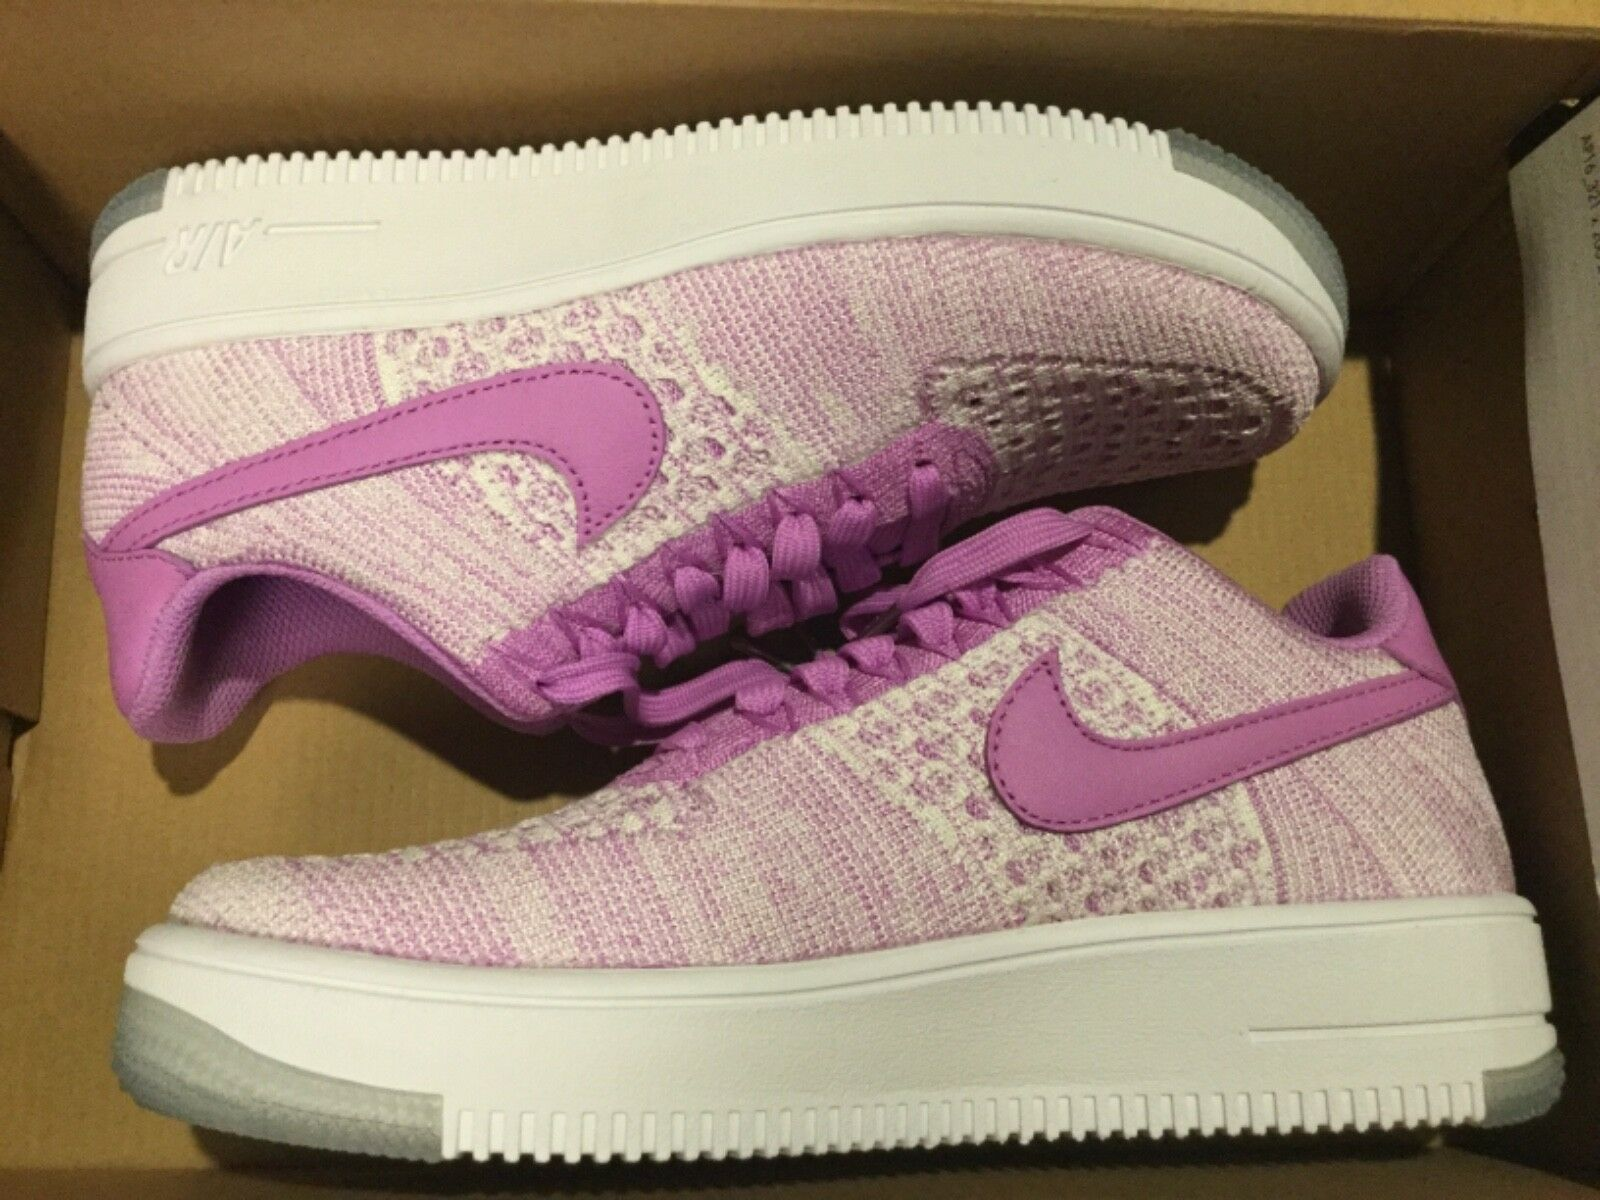 New Nike AF1 Air Air Air Force 1 Flyknit Low shoes 820256-500 Womens fuchsia glow Sz 8 7d04f2